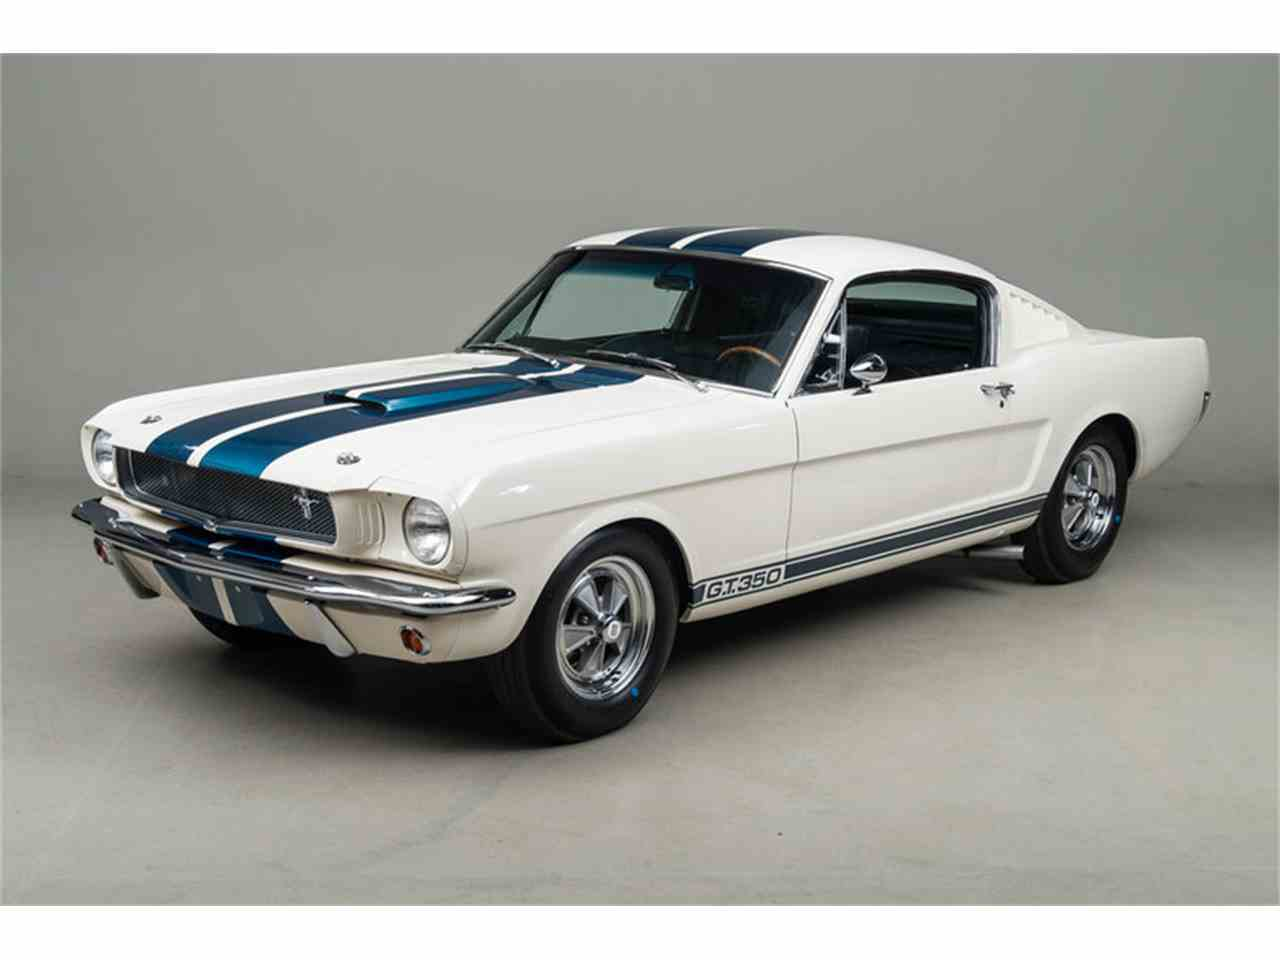 65 Ford Mustang >> 1965 Shelby GT350 for Sale | ClassicCars.com | CC-685543